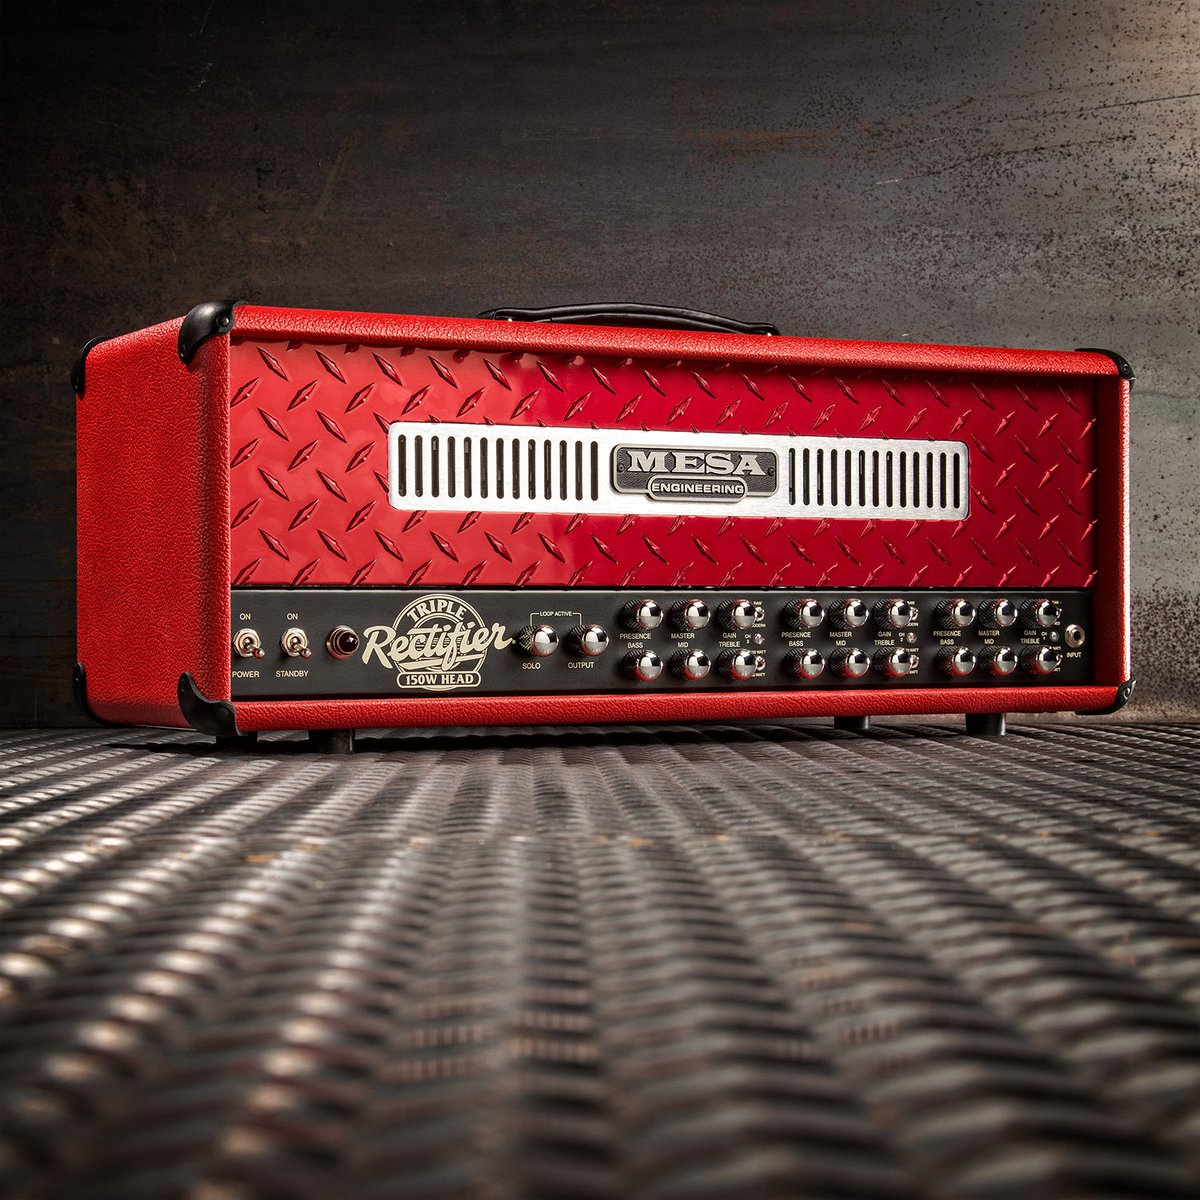 Triple Rectifier in Red Bronco with a Red Anodized Diamond Plate front panel! What's your dream/custom Recto? https://t.co/FGNRXnvr1H